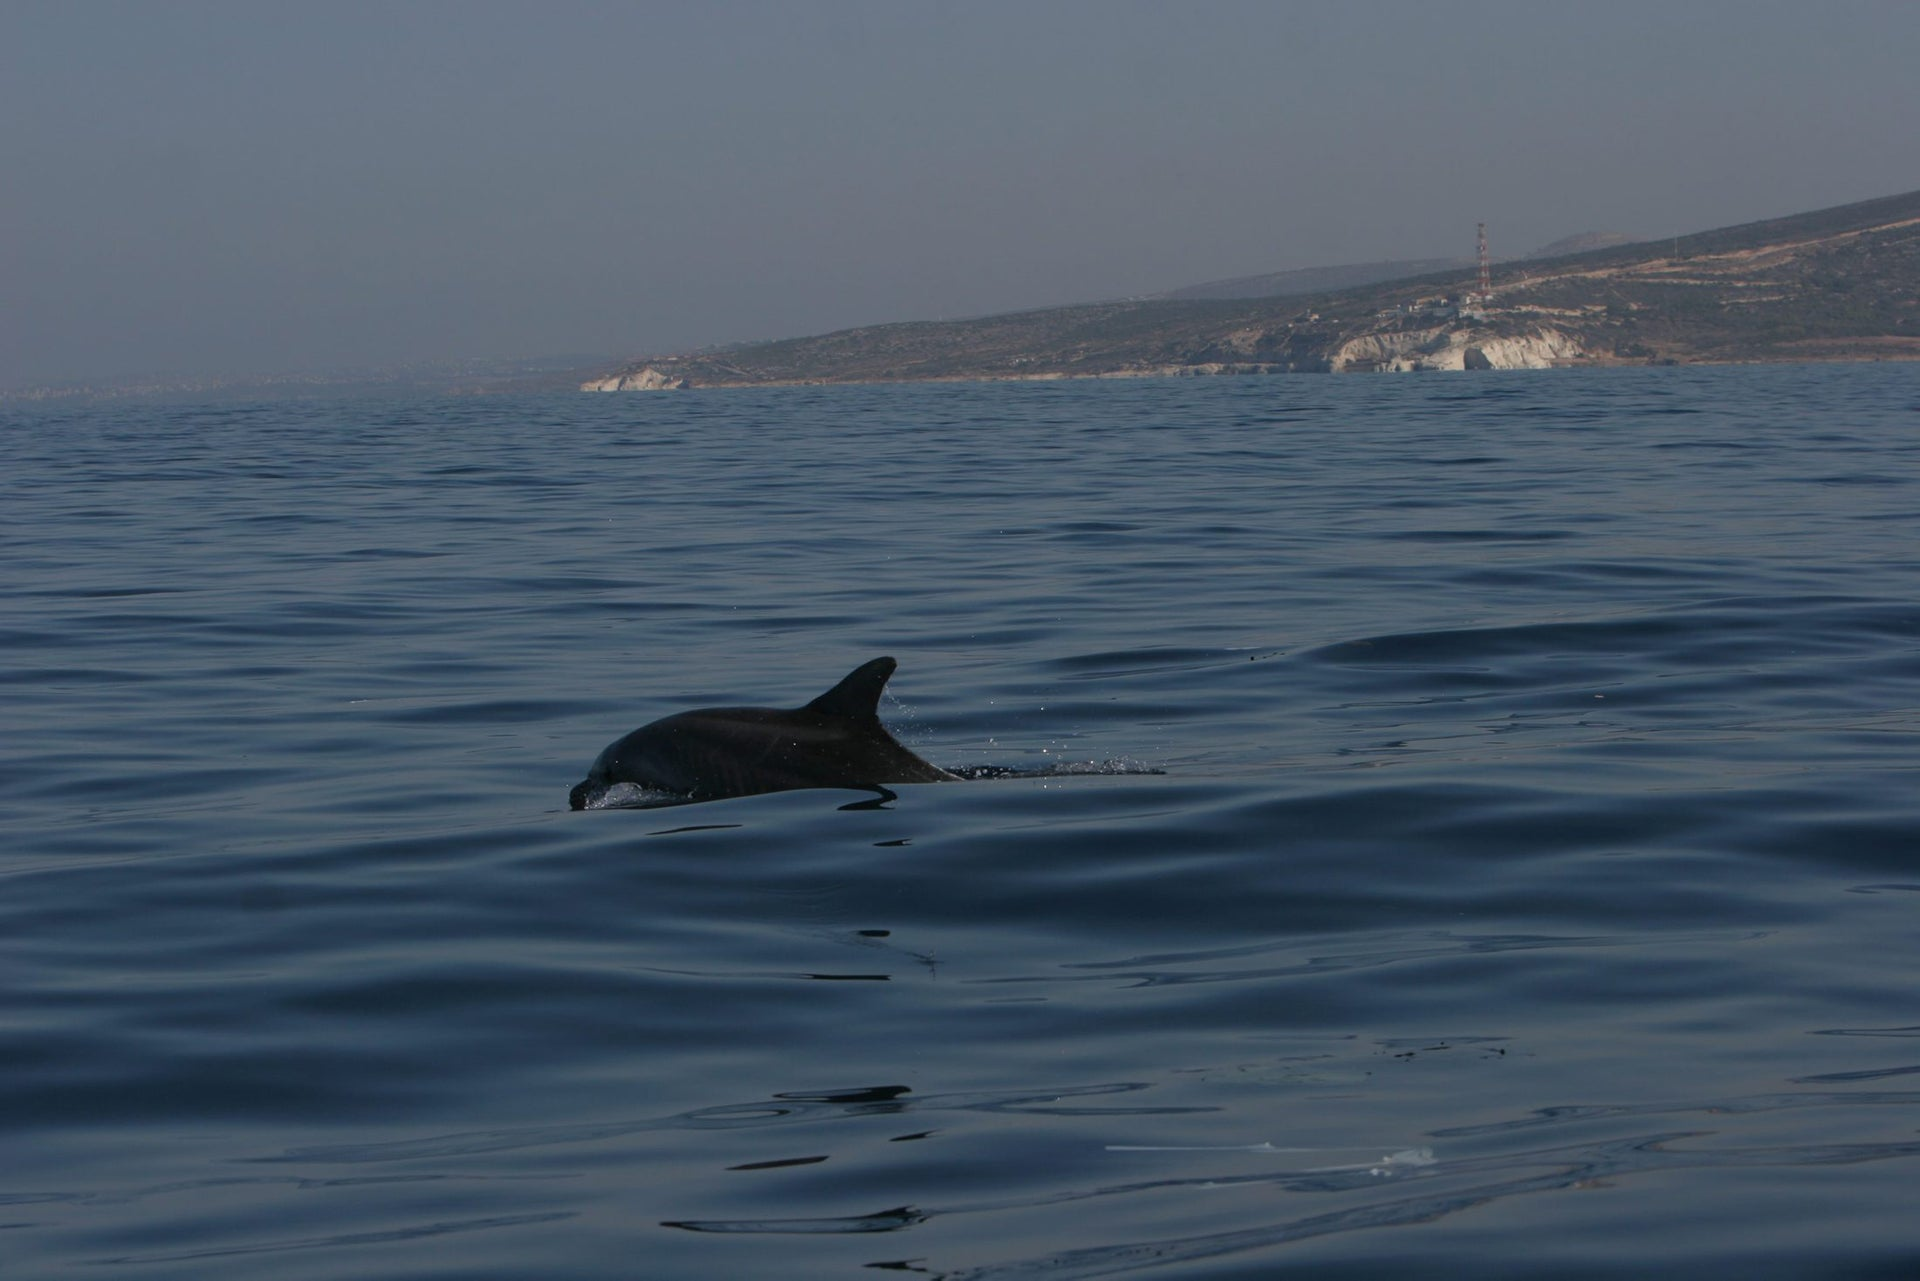 A dolphin in the Rosh Hanikra Marine Reserve.